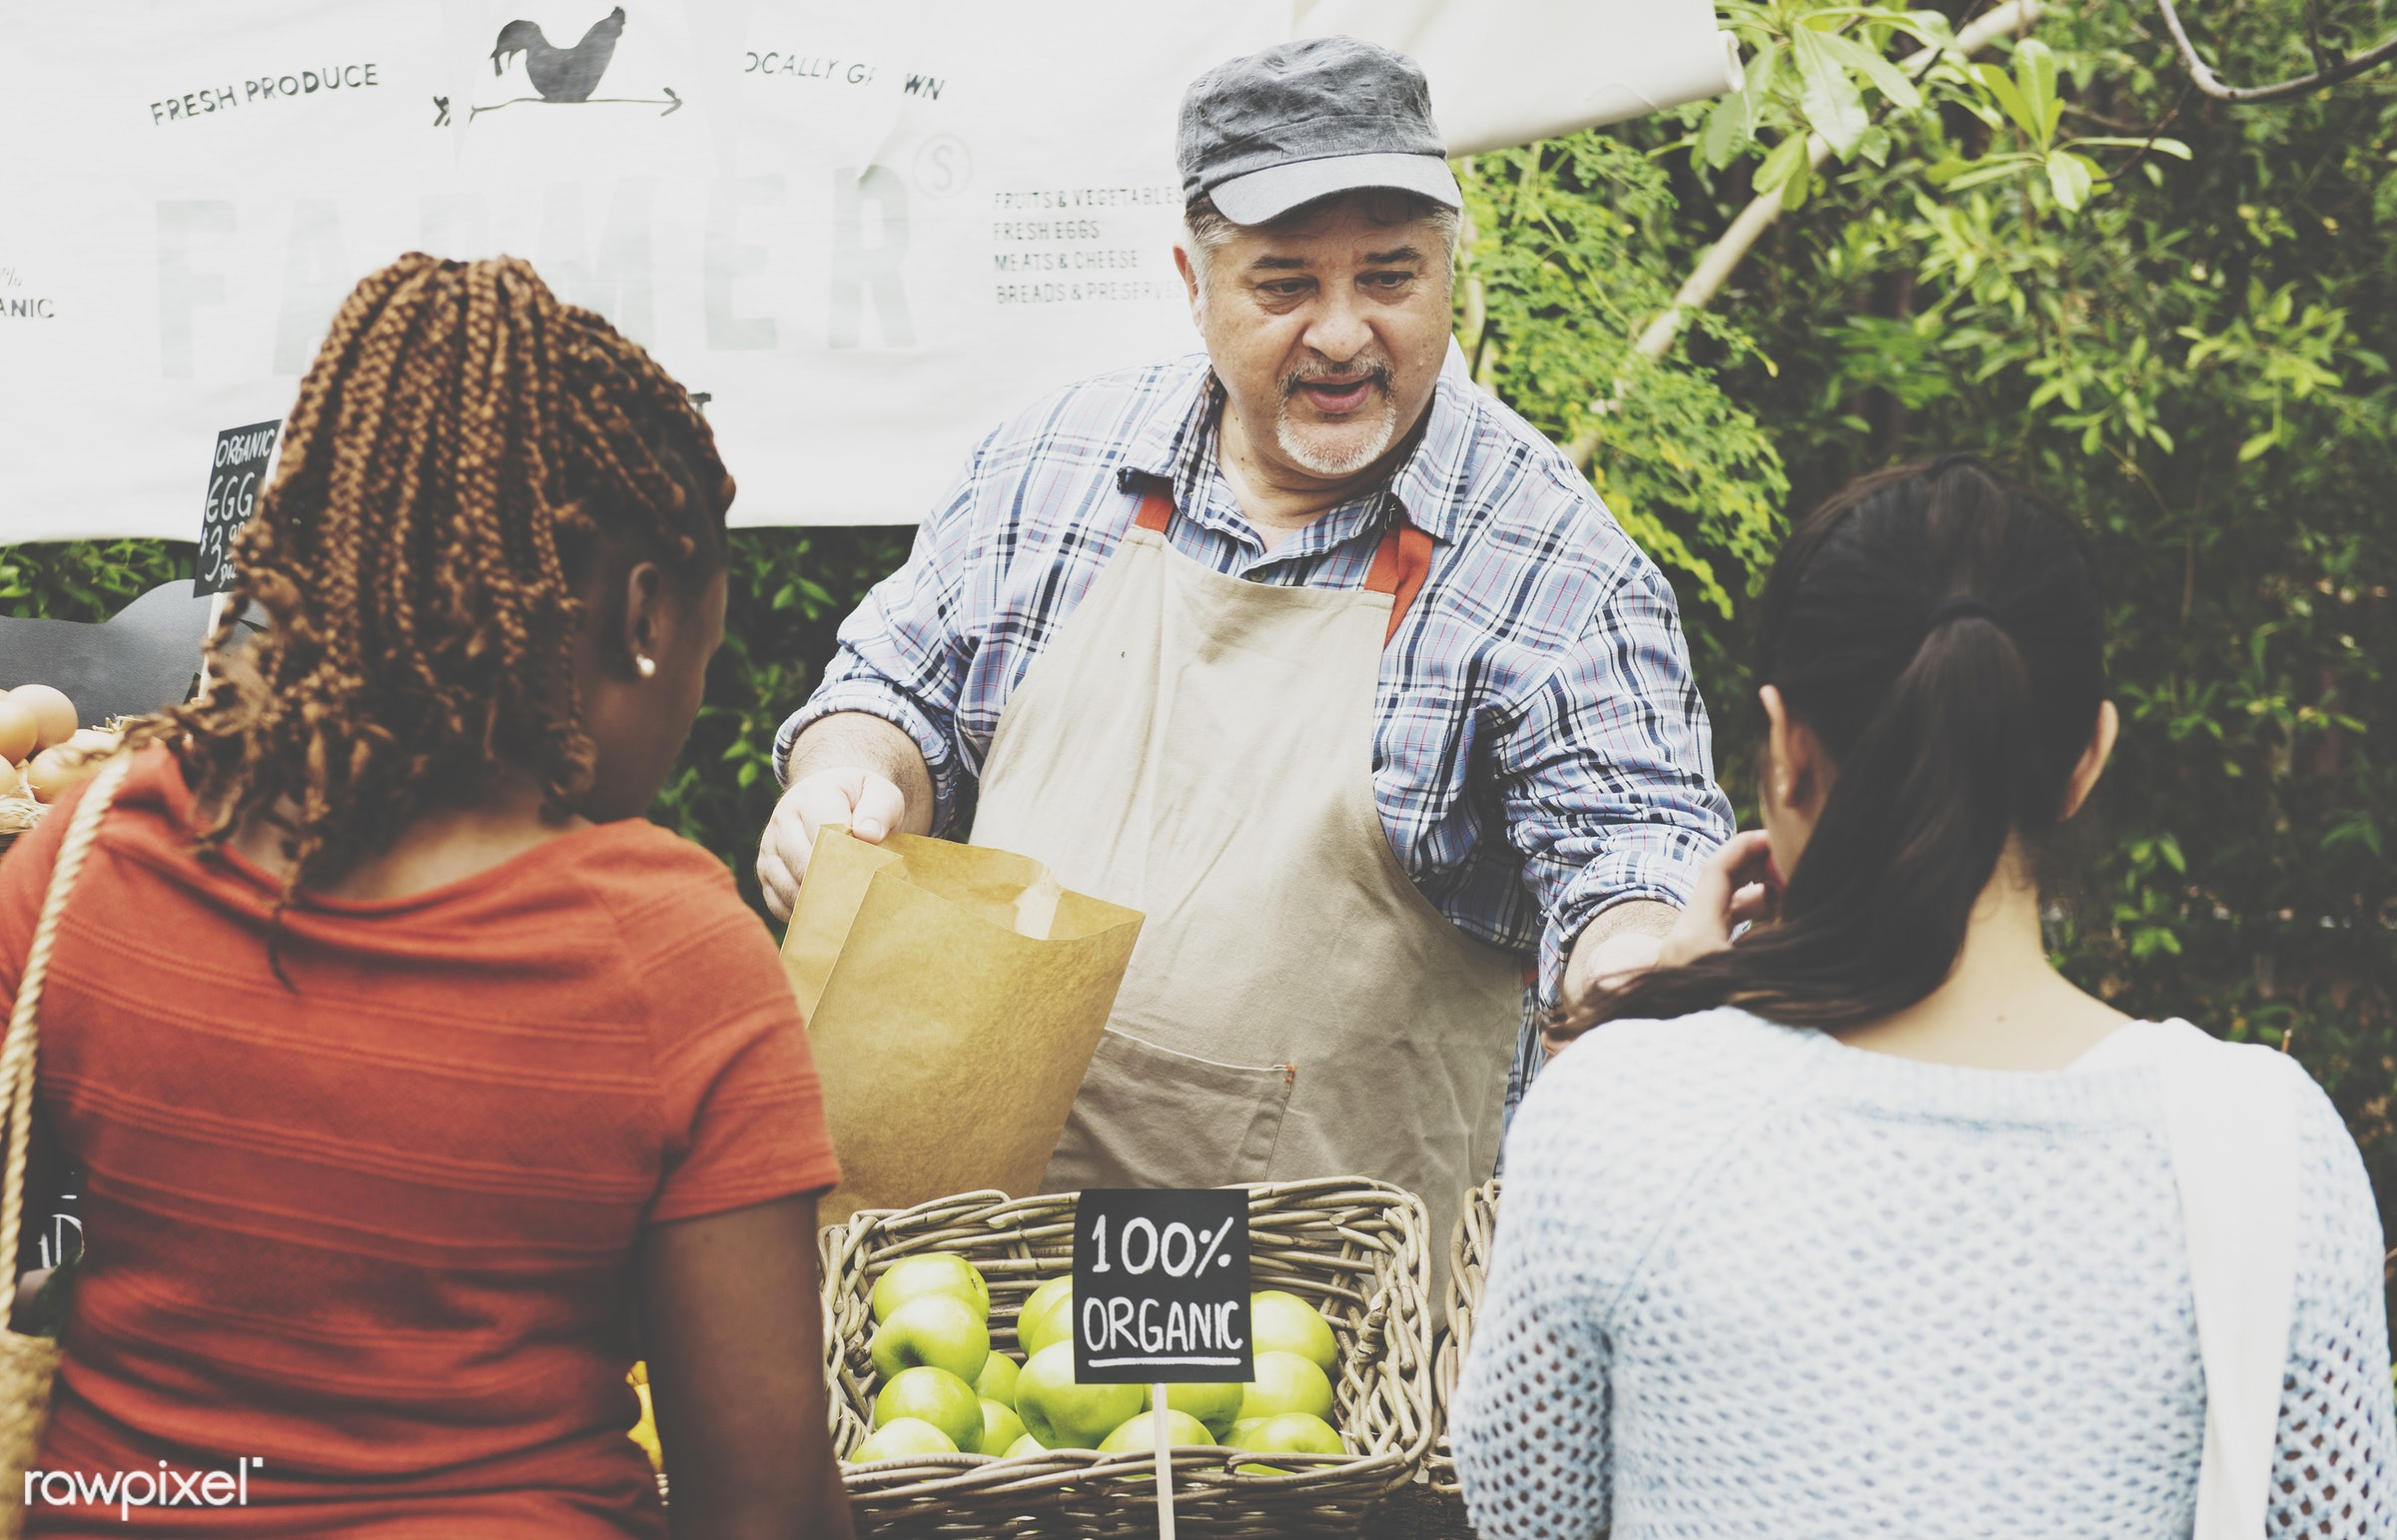 grocery, shop, person, store, stall, buy, consumer, people, farmer, woman, choosing, lifestyle, choose, smiling, fruit,...